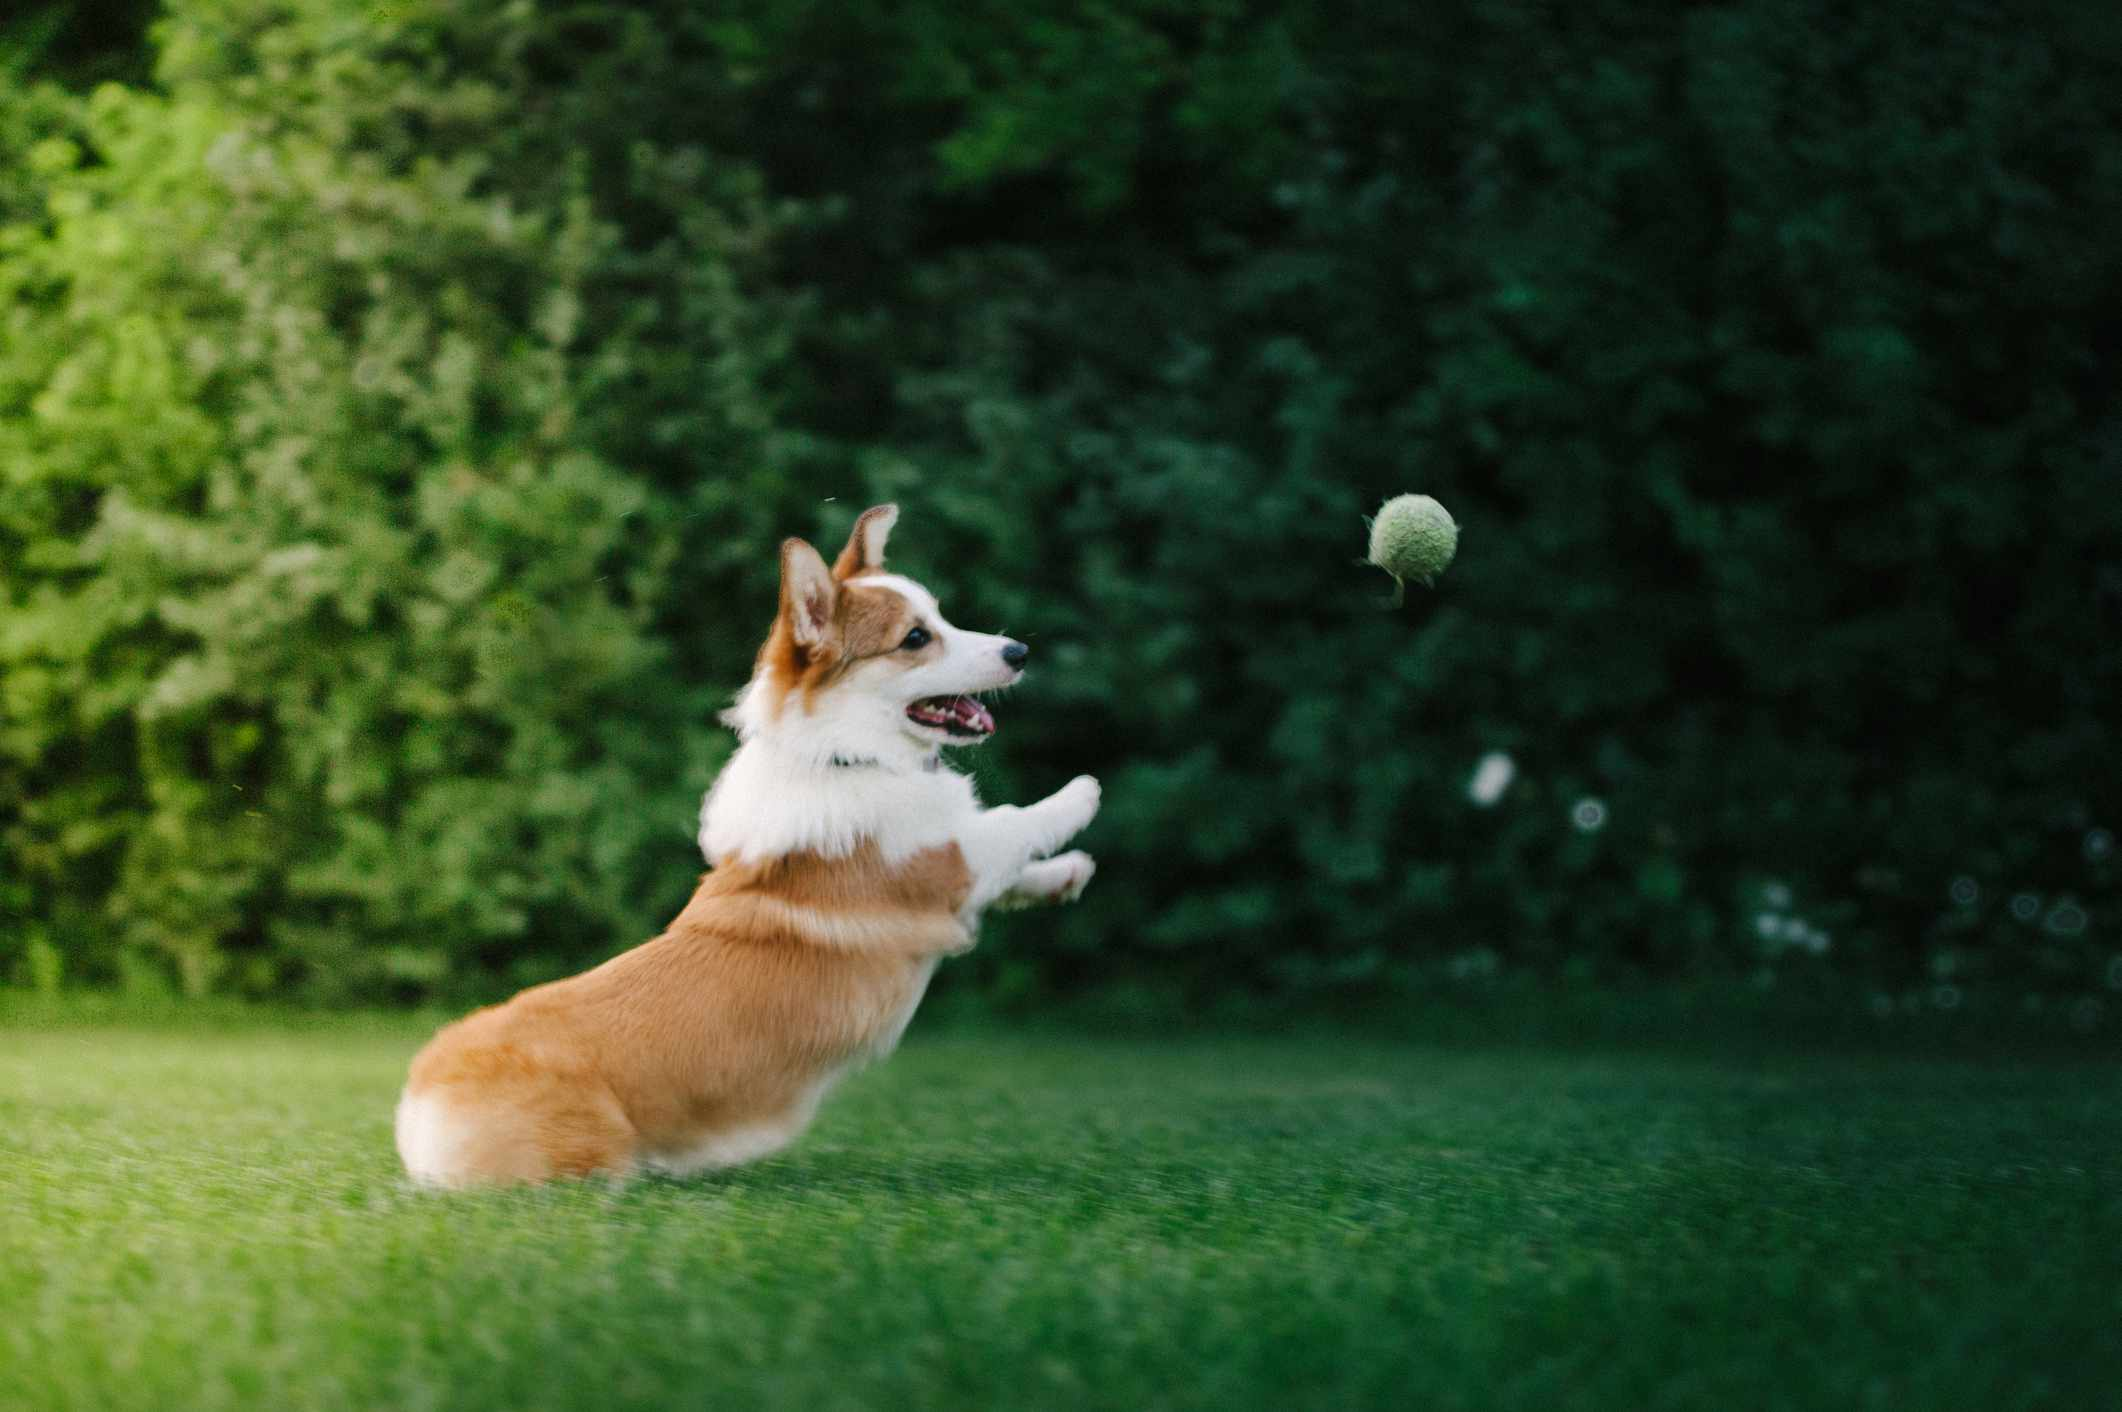 A brown and white corgi dog jumping in the air to catch a tennis ball.